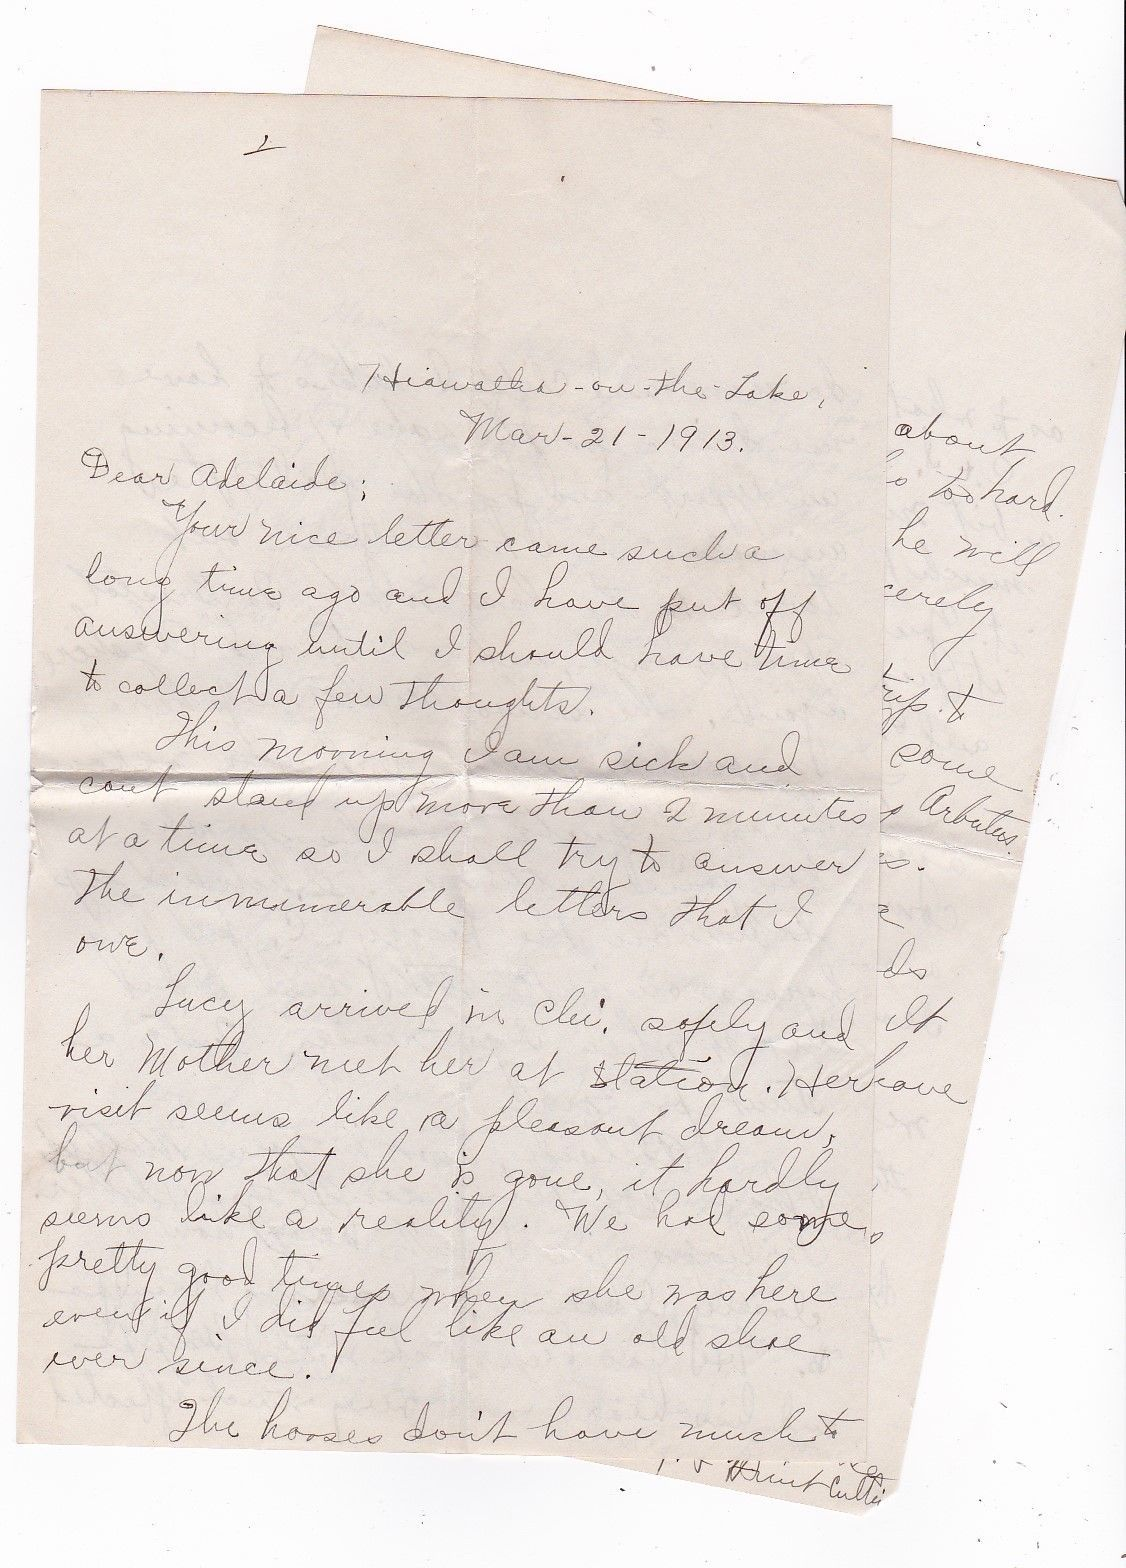 NAPLES, NY MARCH 21 1913 WITH LETTER